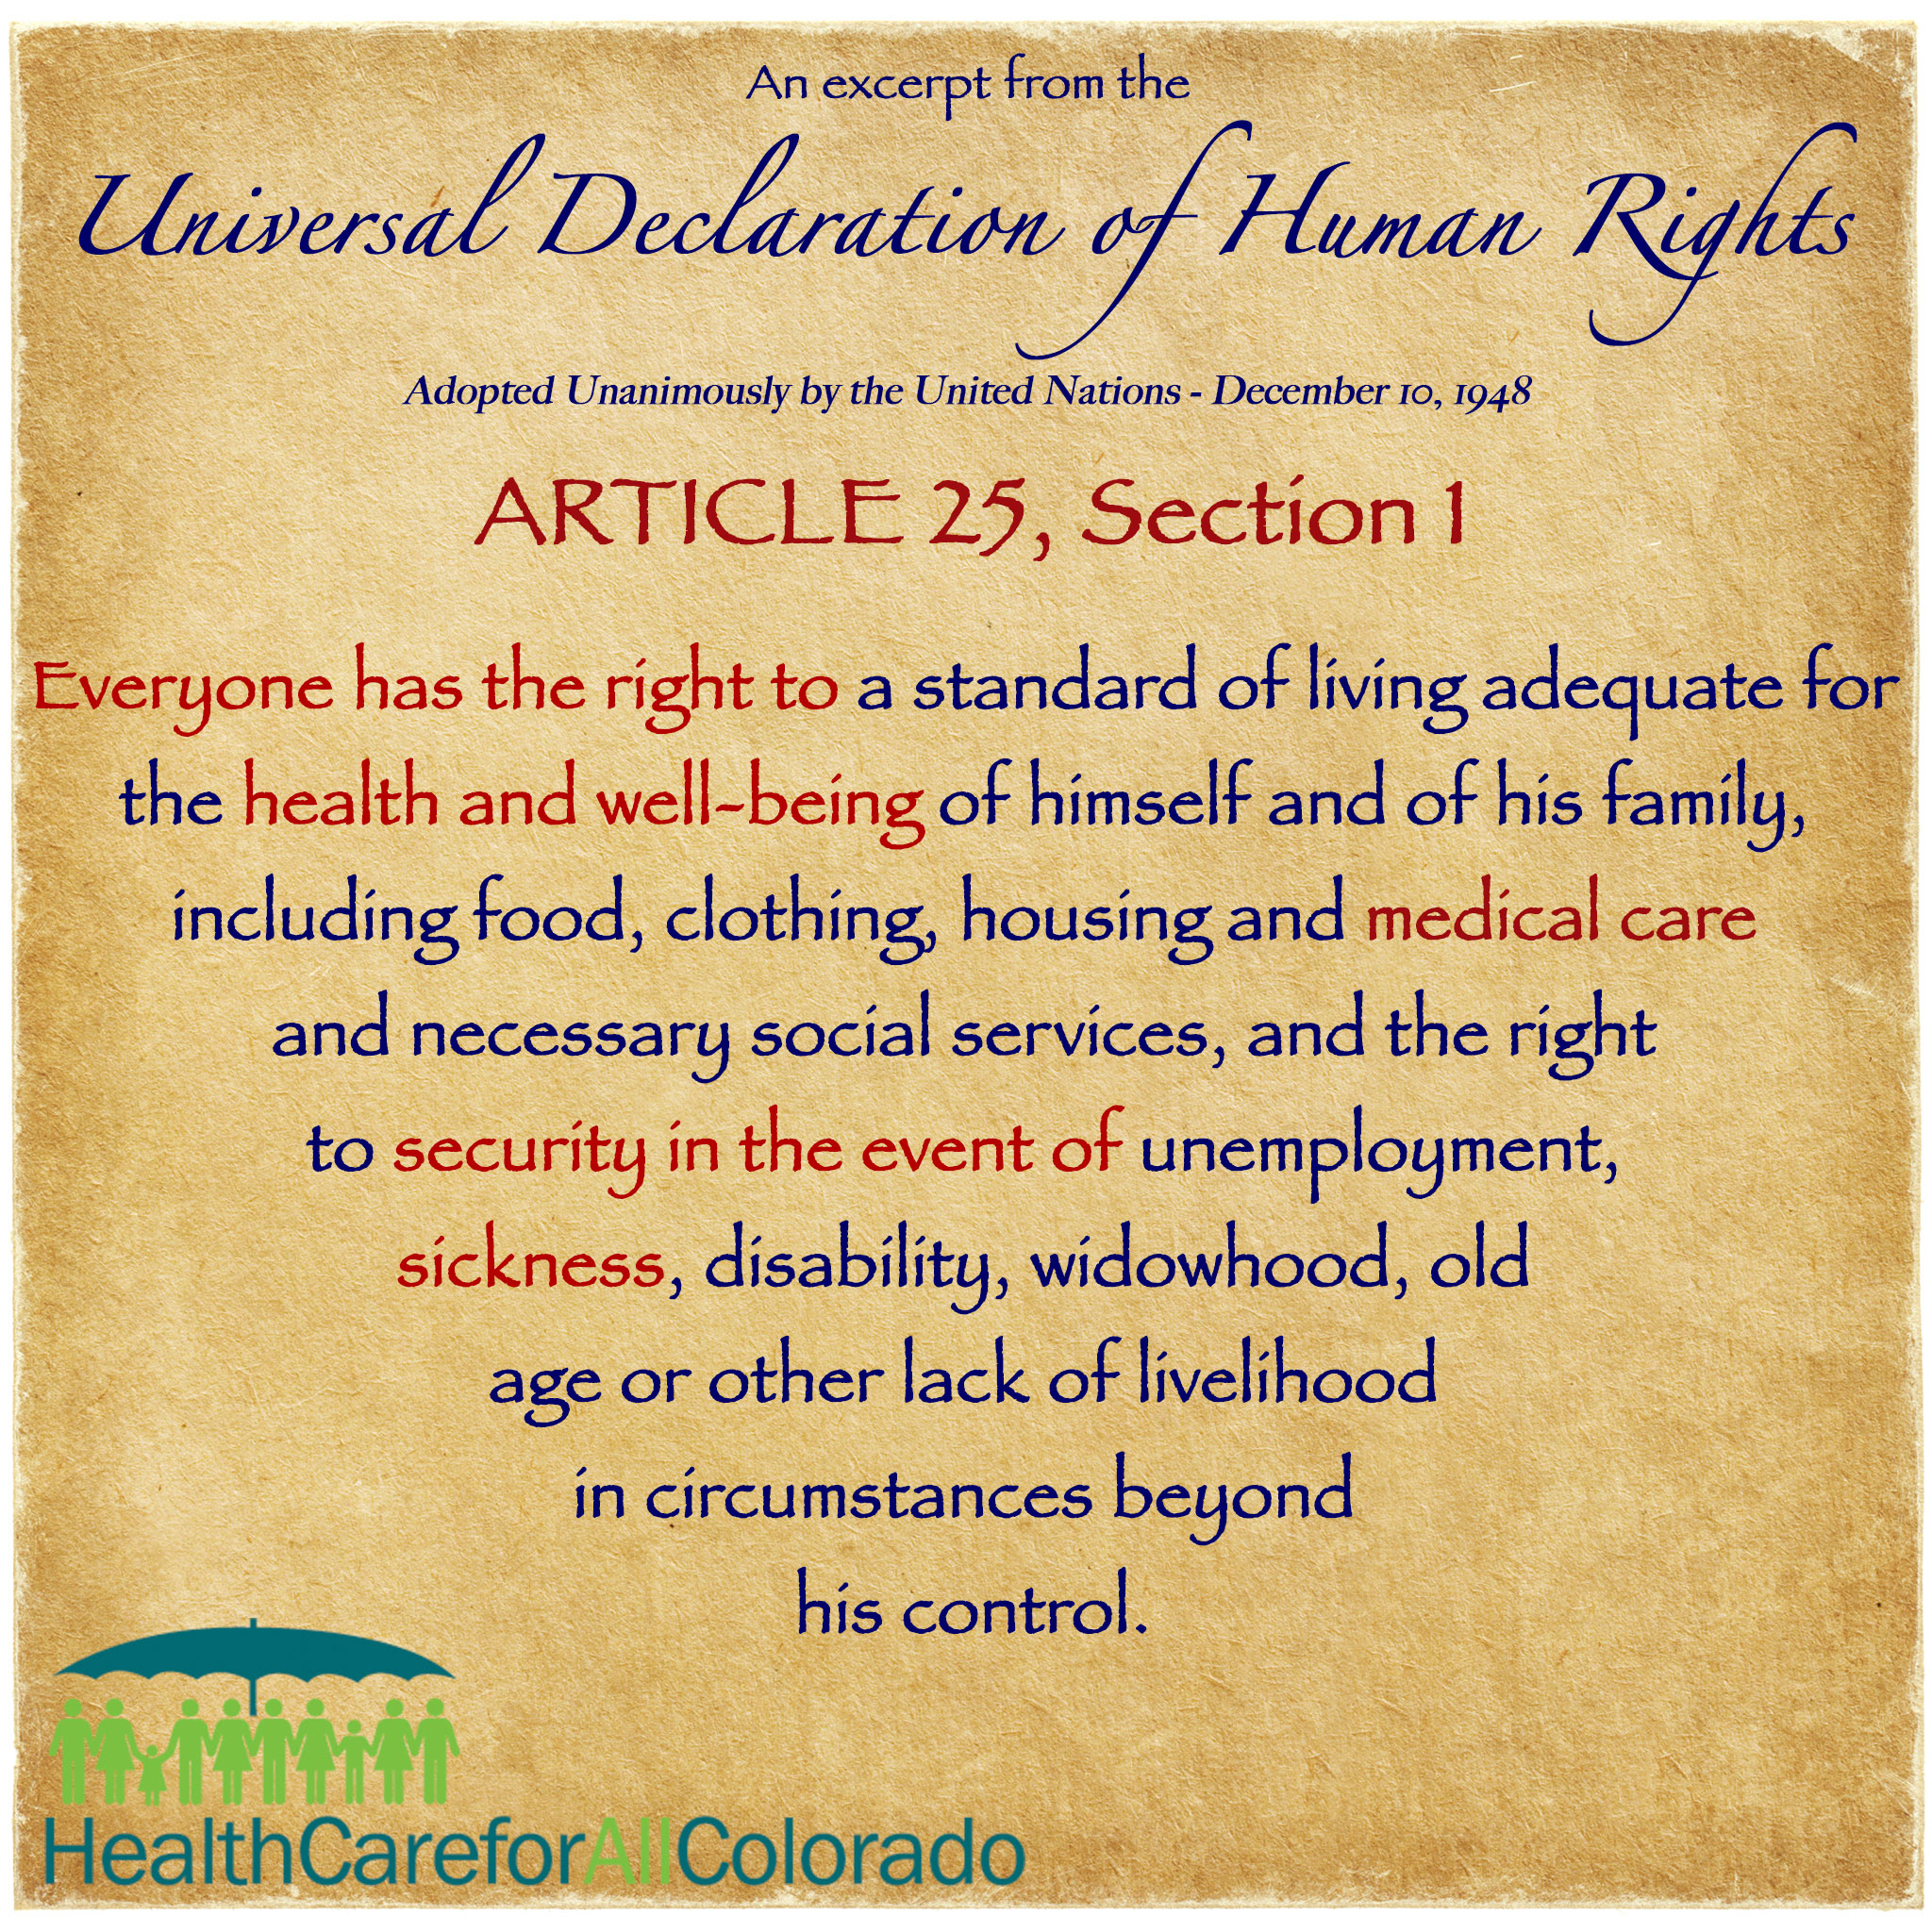 when is a human right a human right? - health care for all colorado